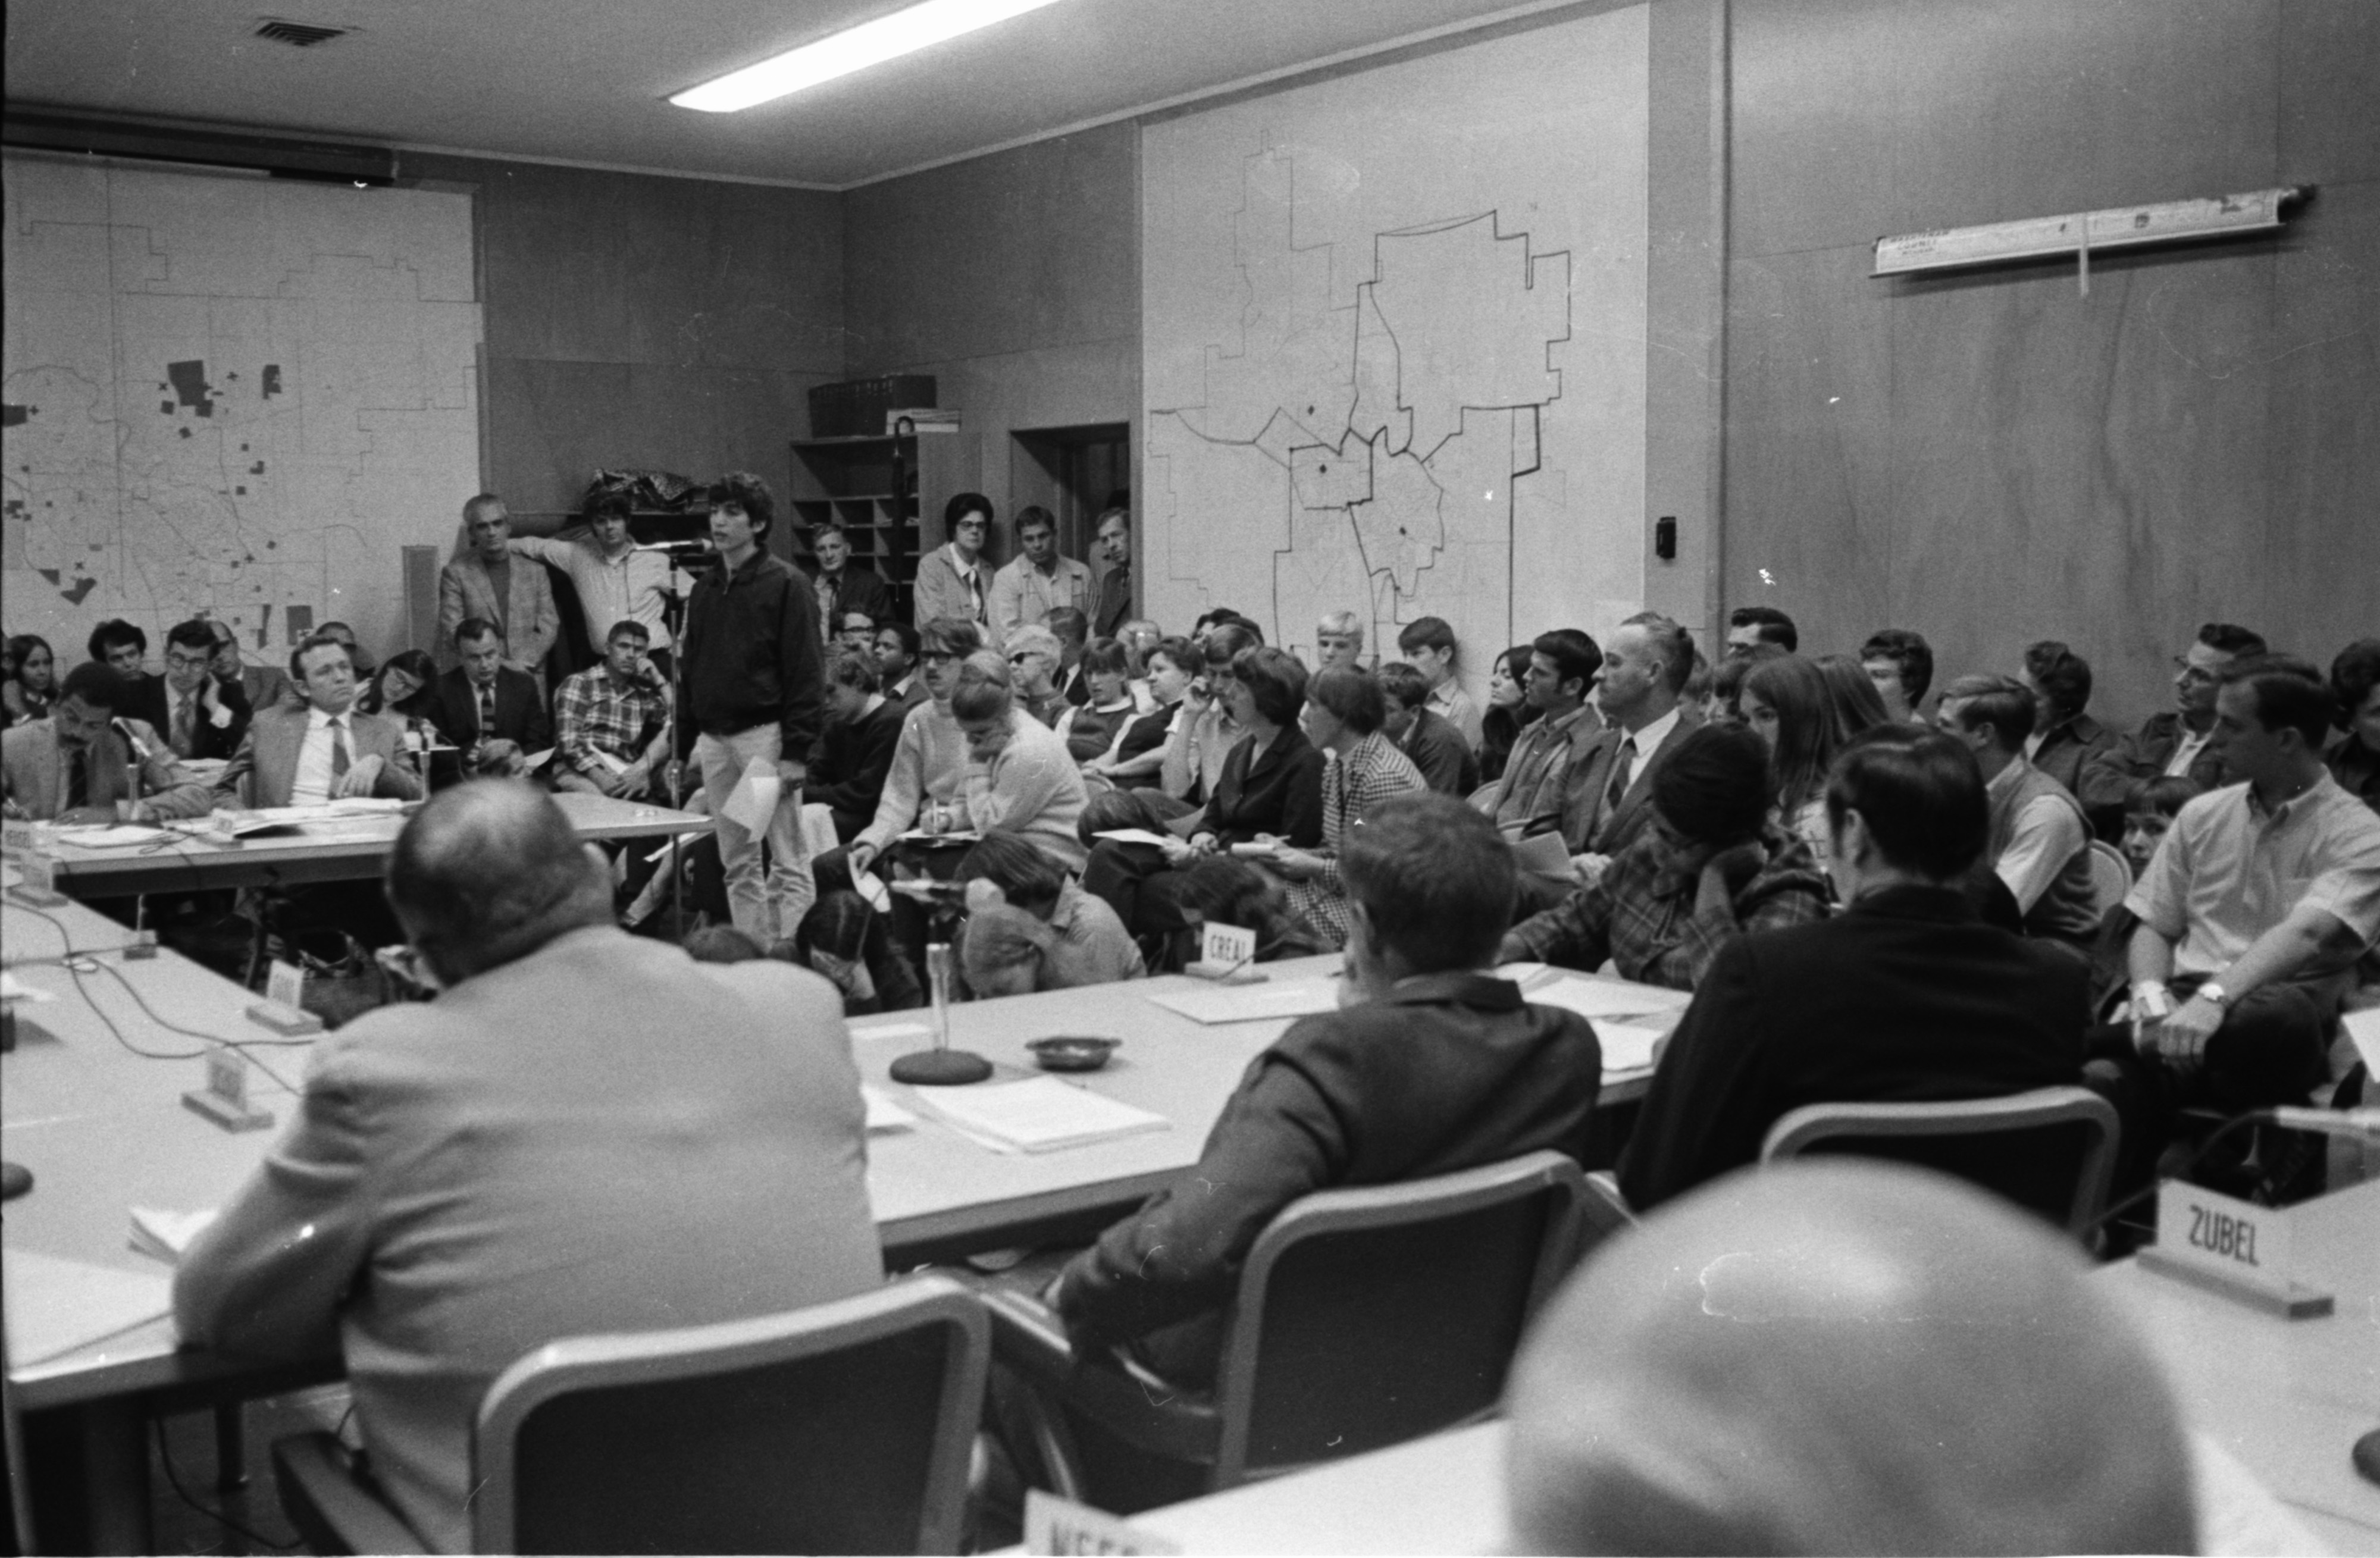 Ann Arbor Board of Education Holds Public Forum On Pioneer High School Riot, November 1970 image